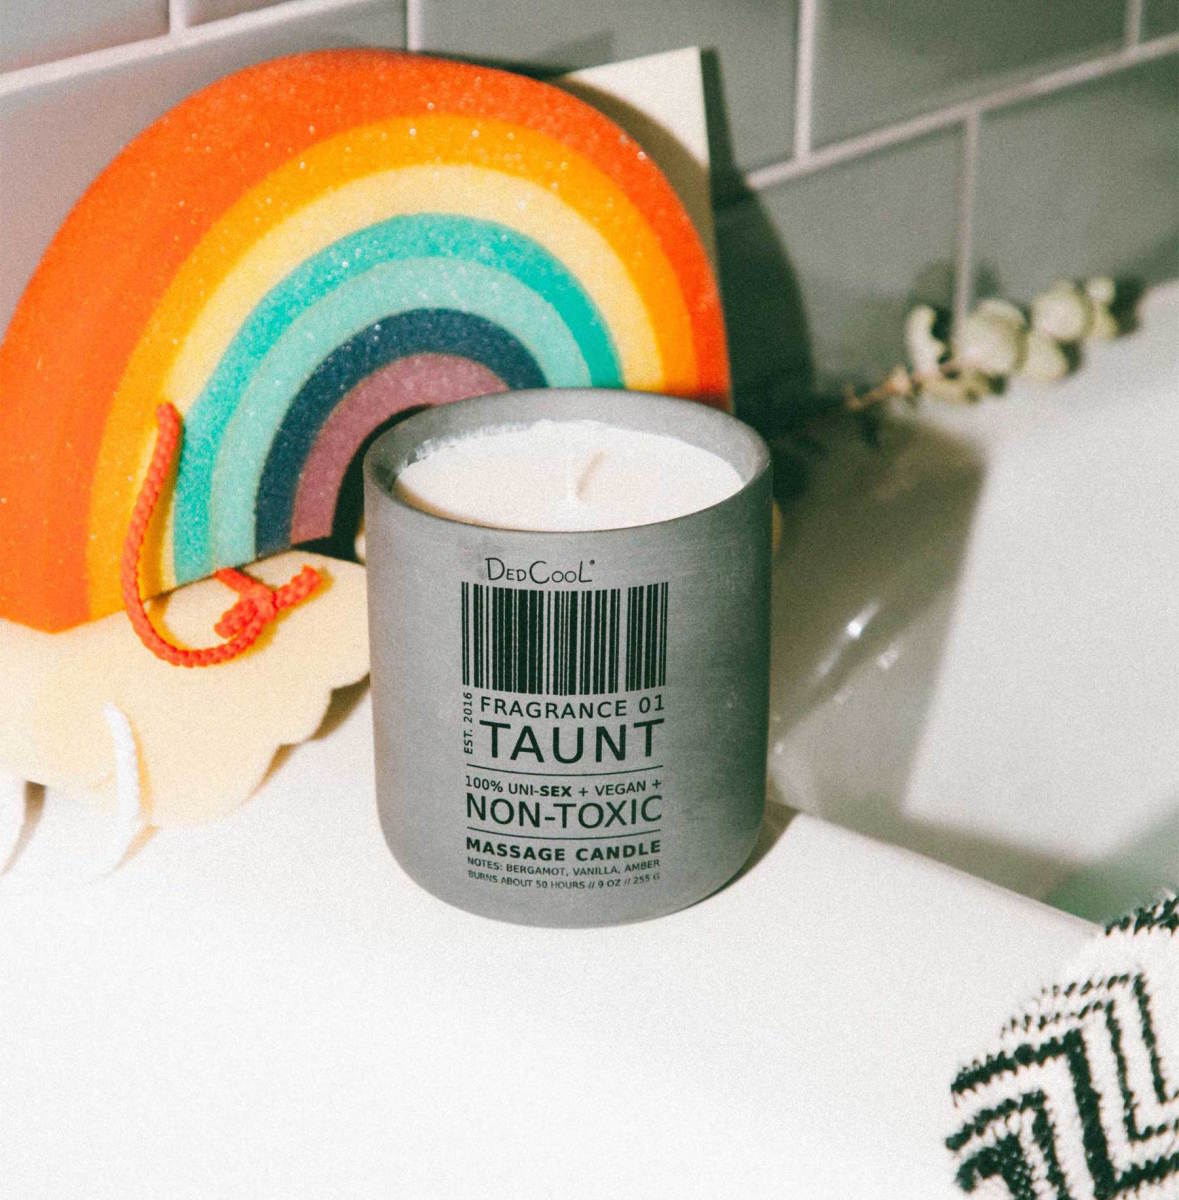 DedCool Massage Candle 01 Taunt, $55, available here. Photo: Courtesy of DedCool